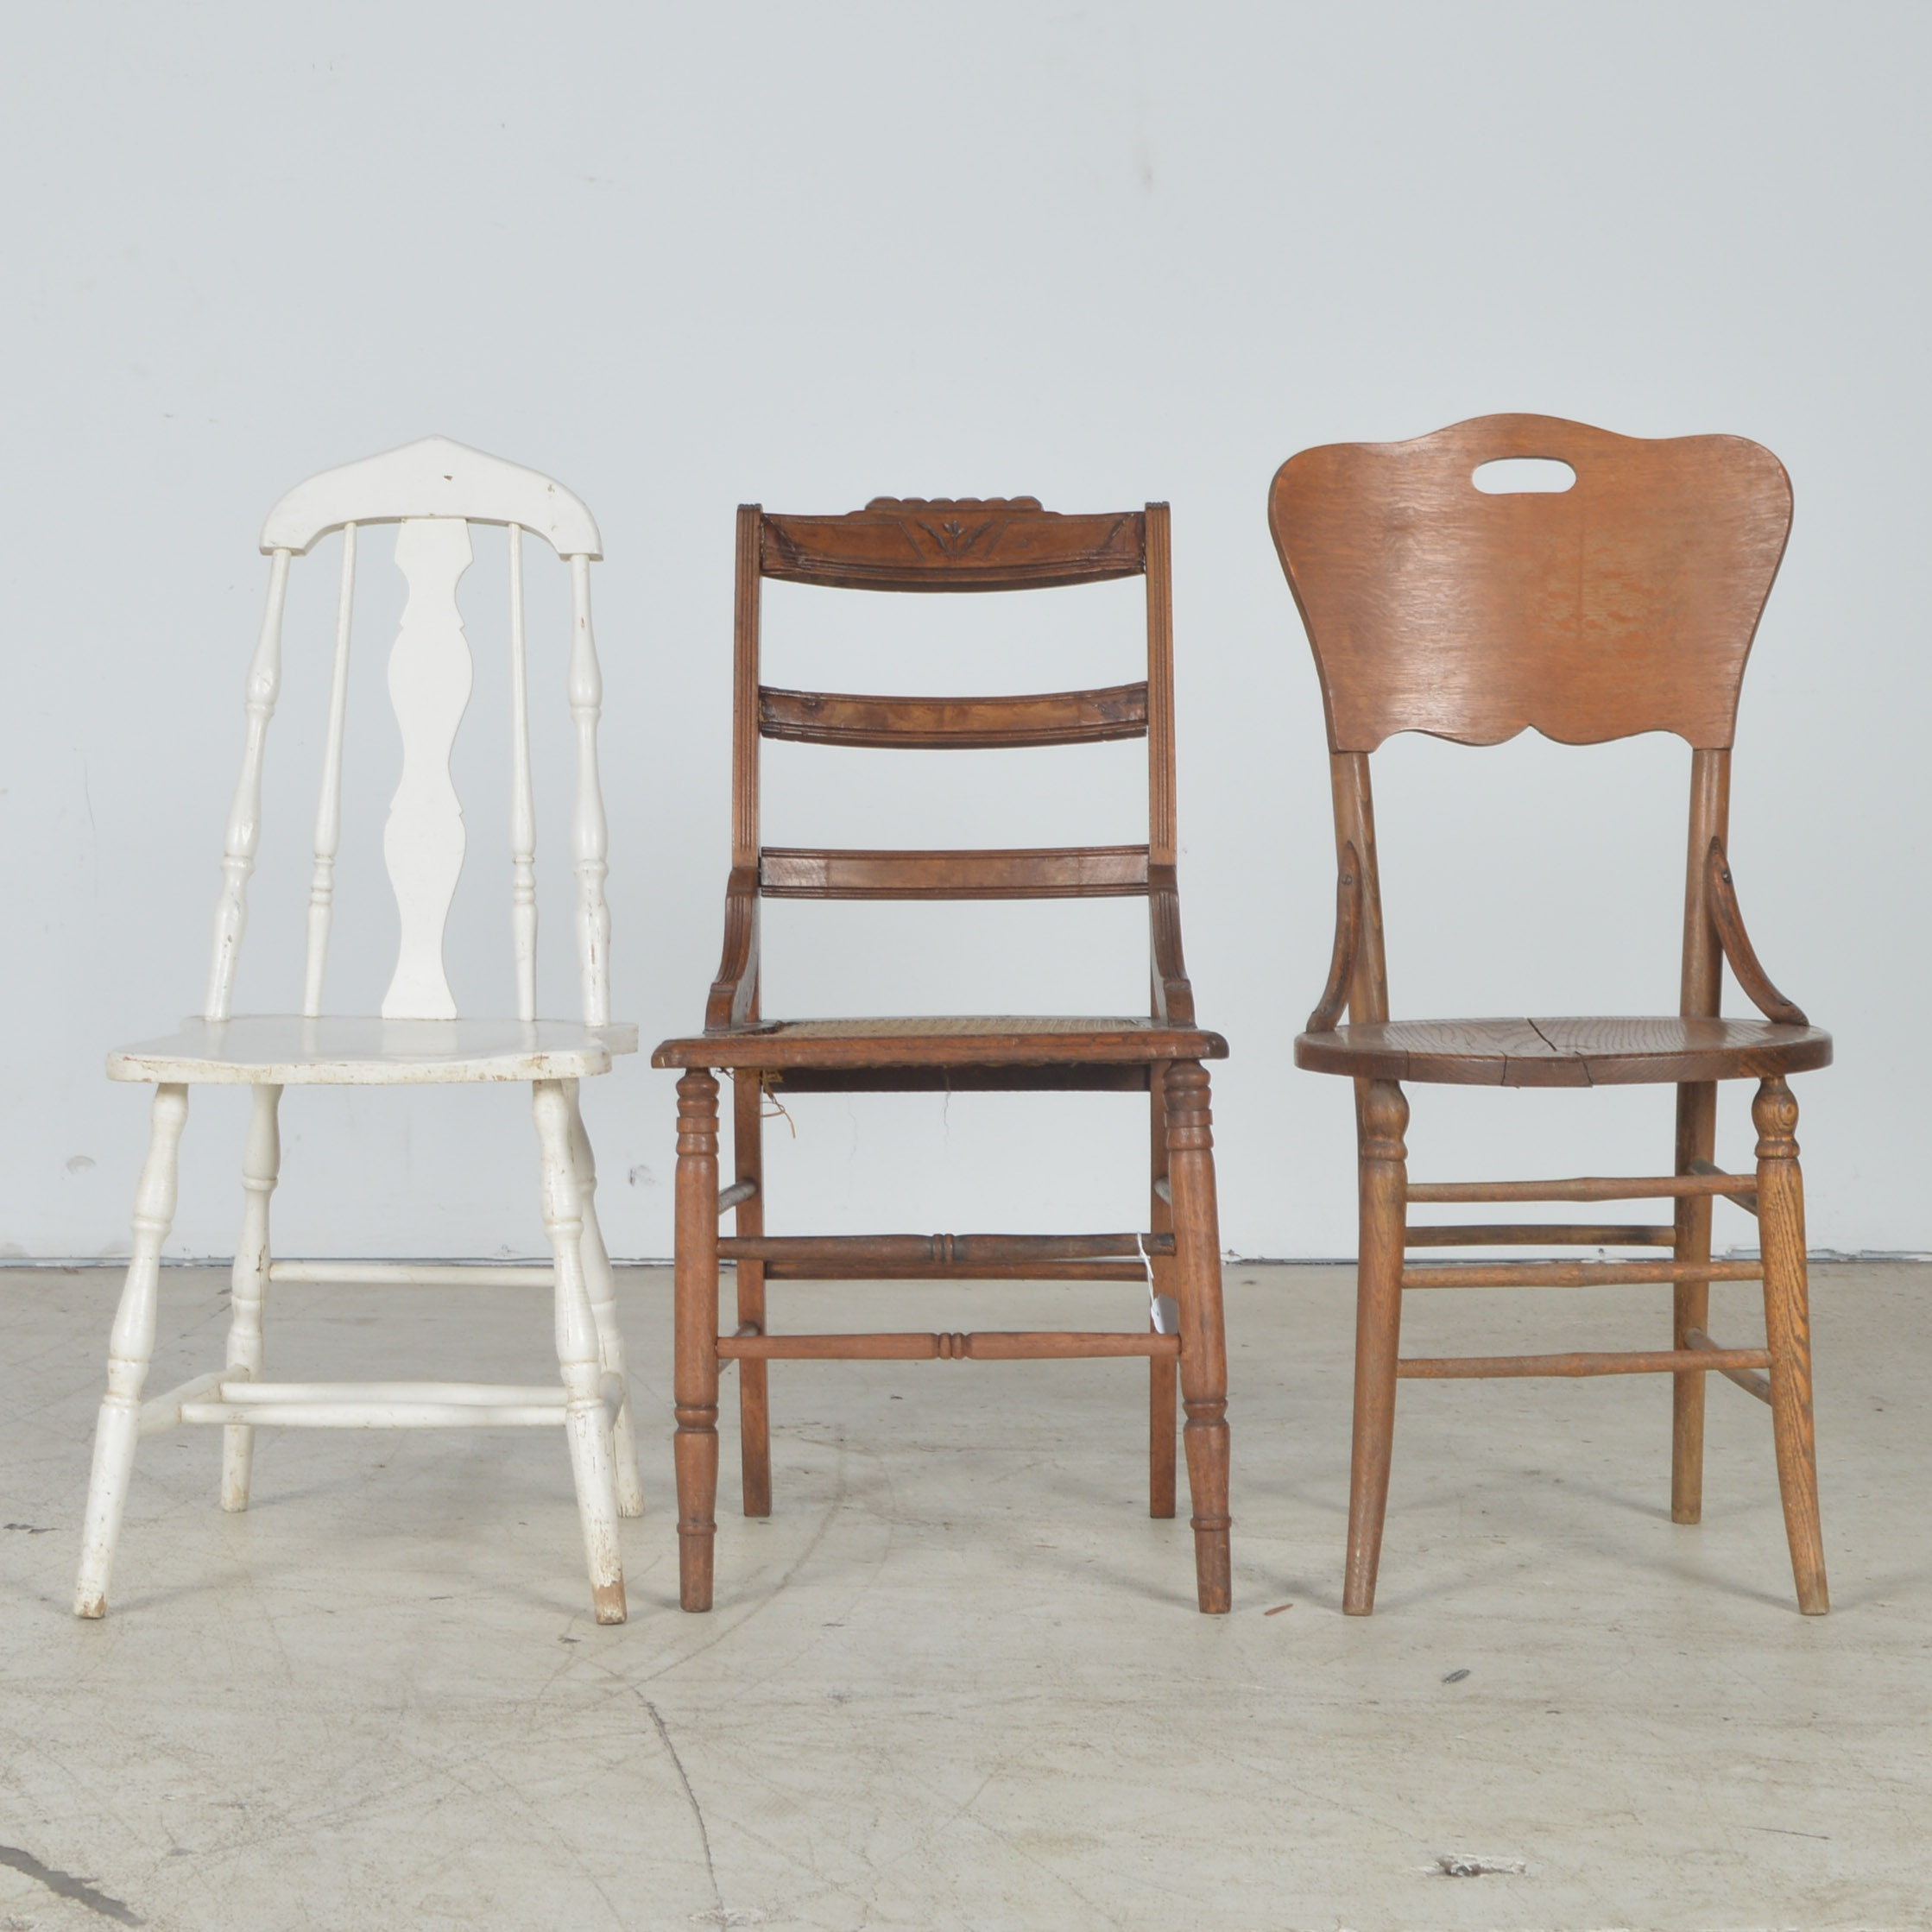 Three Vintage Wooden Chairs